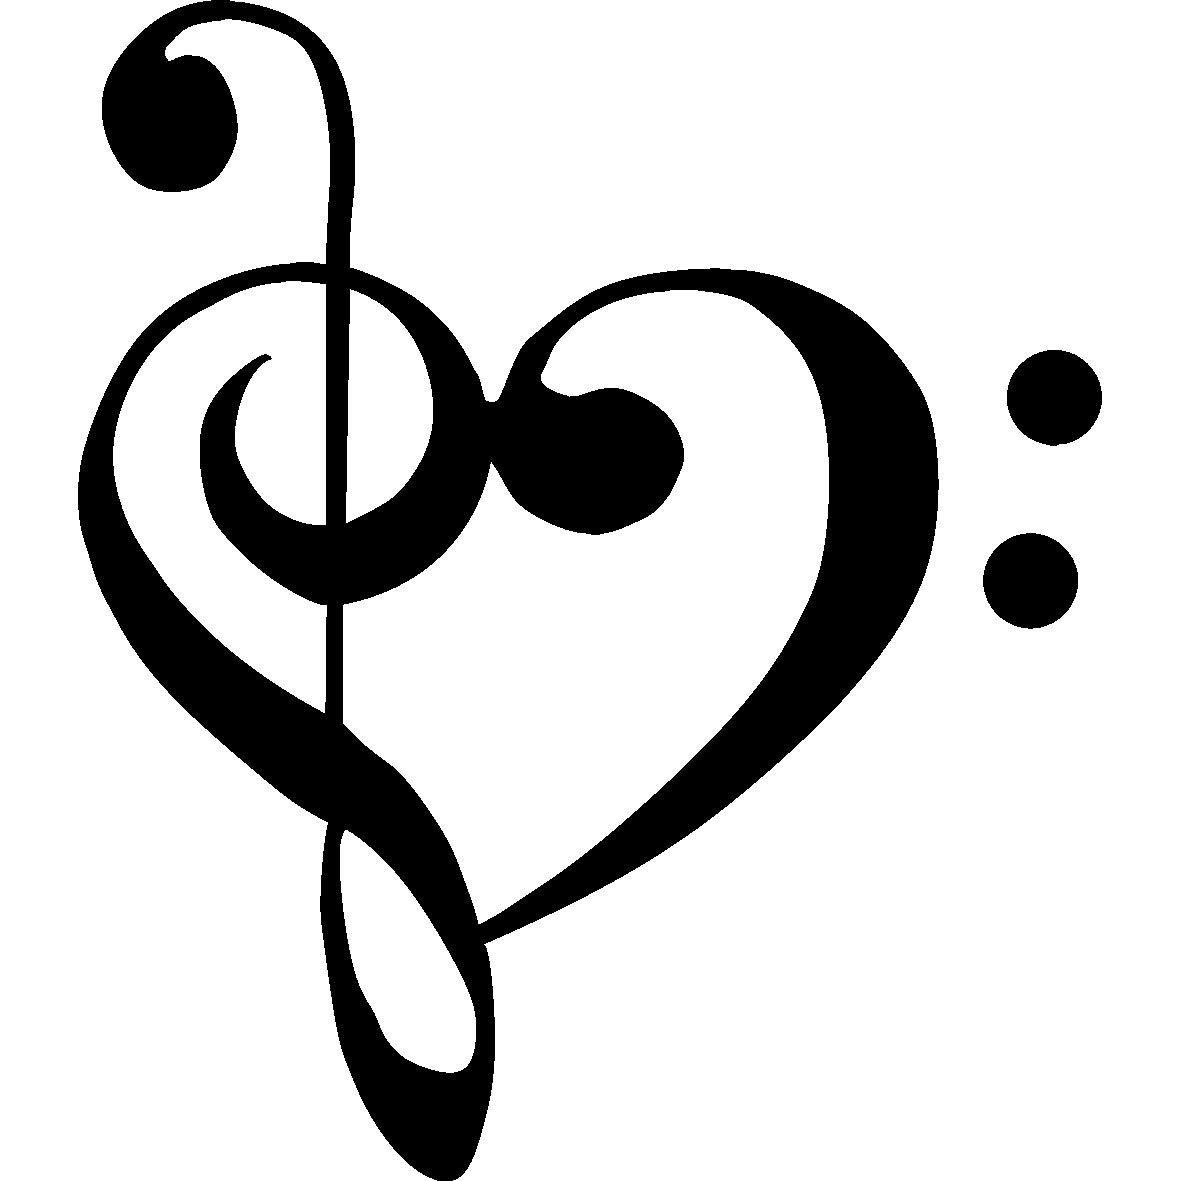 Bass Clef Treble Clef Heart Free Images At Clker Vector Clip